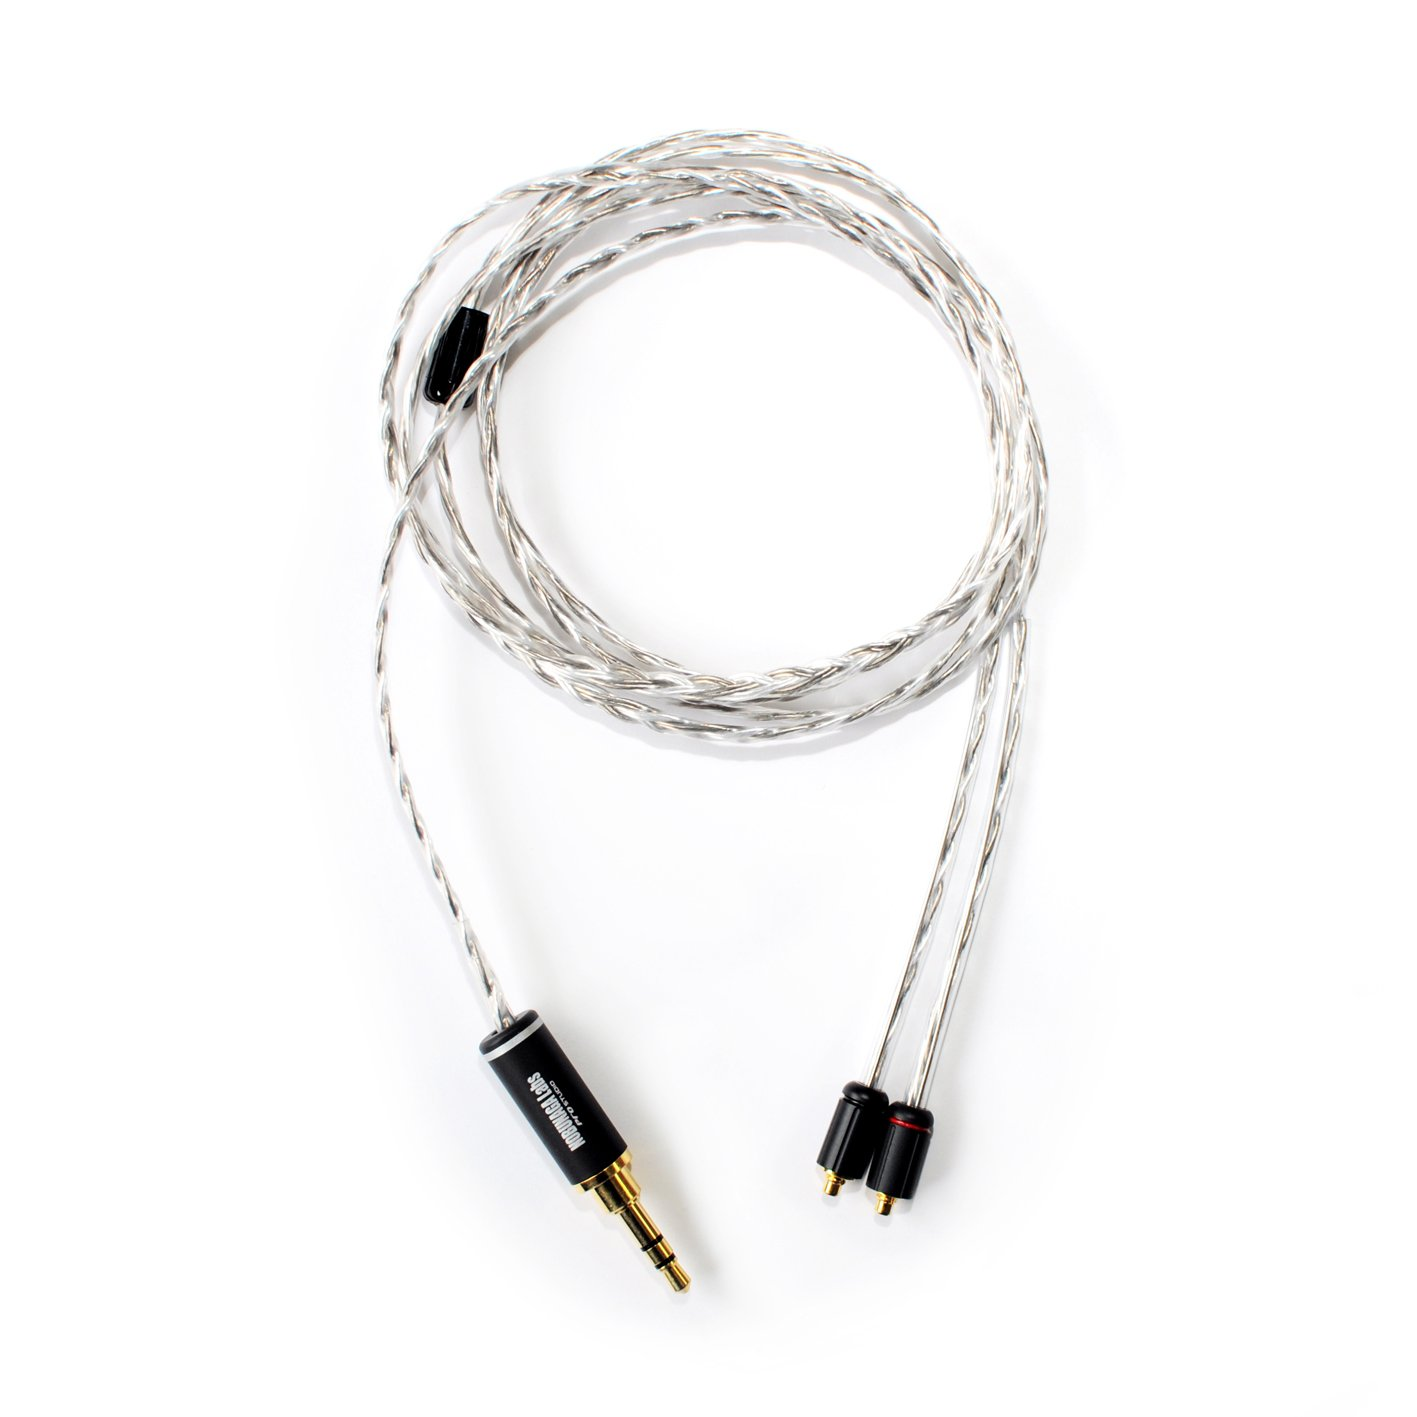 OCC Silver Plated Audio Cable wire For JVC HA-FW01 HA-FW02 Headphones